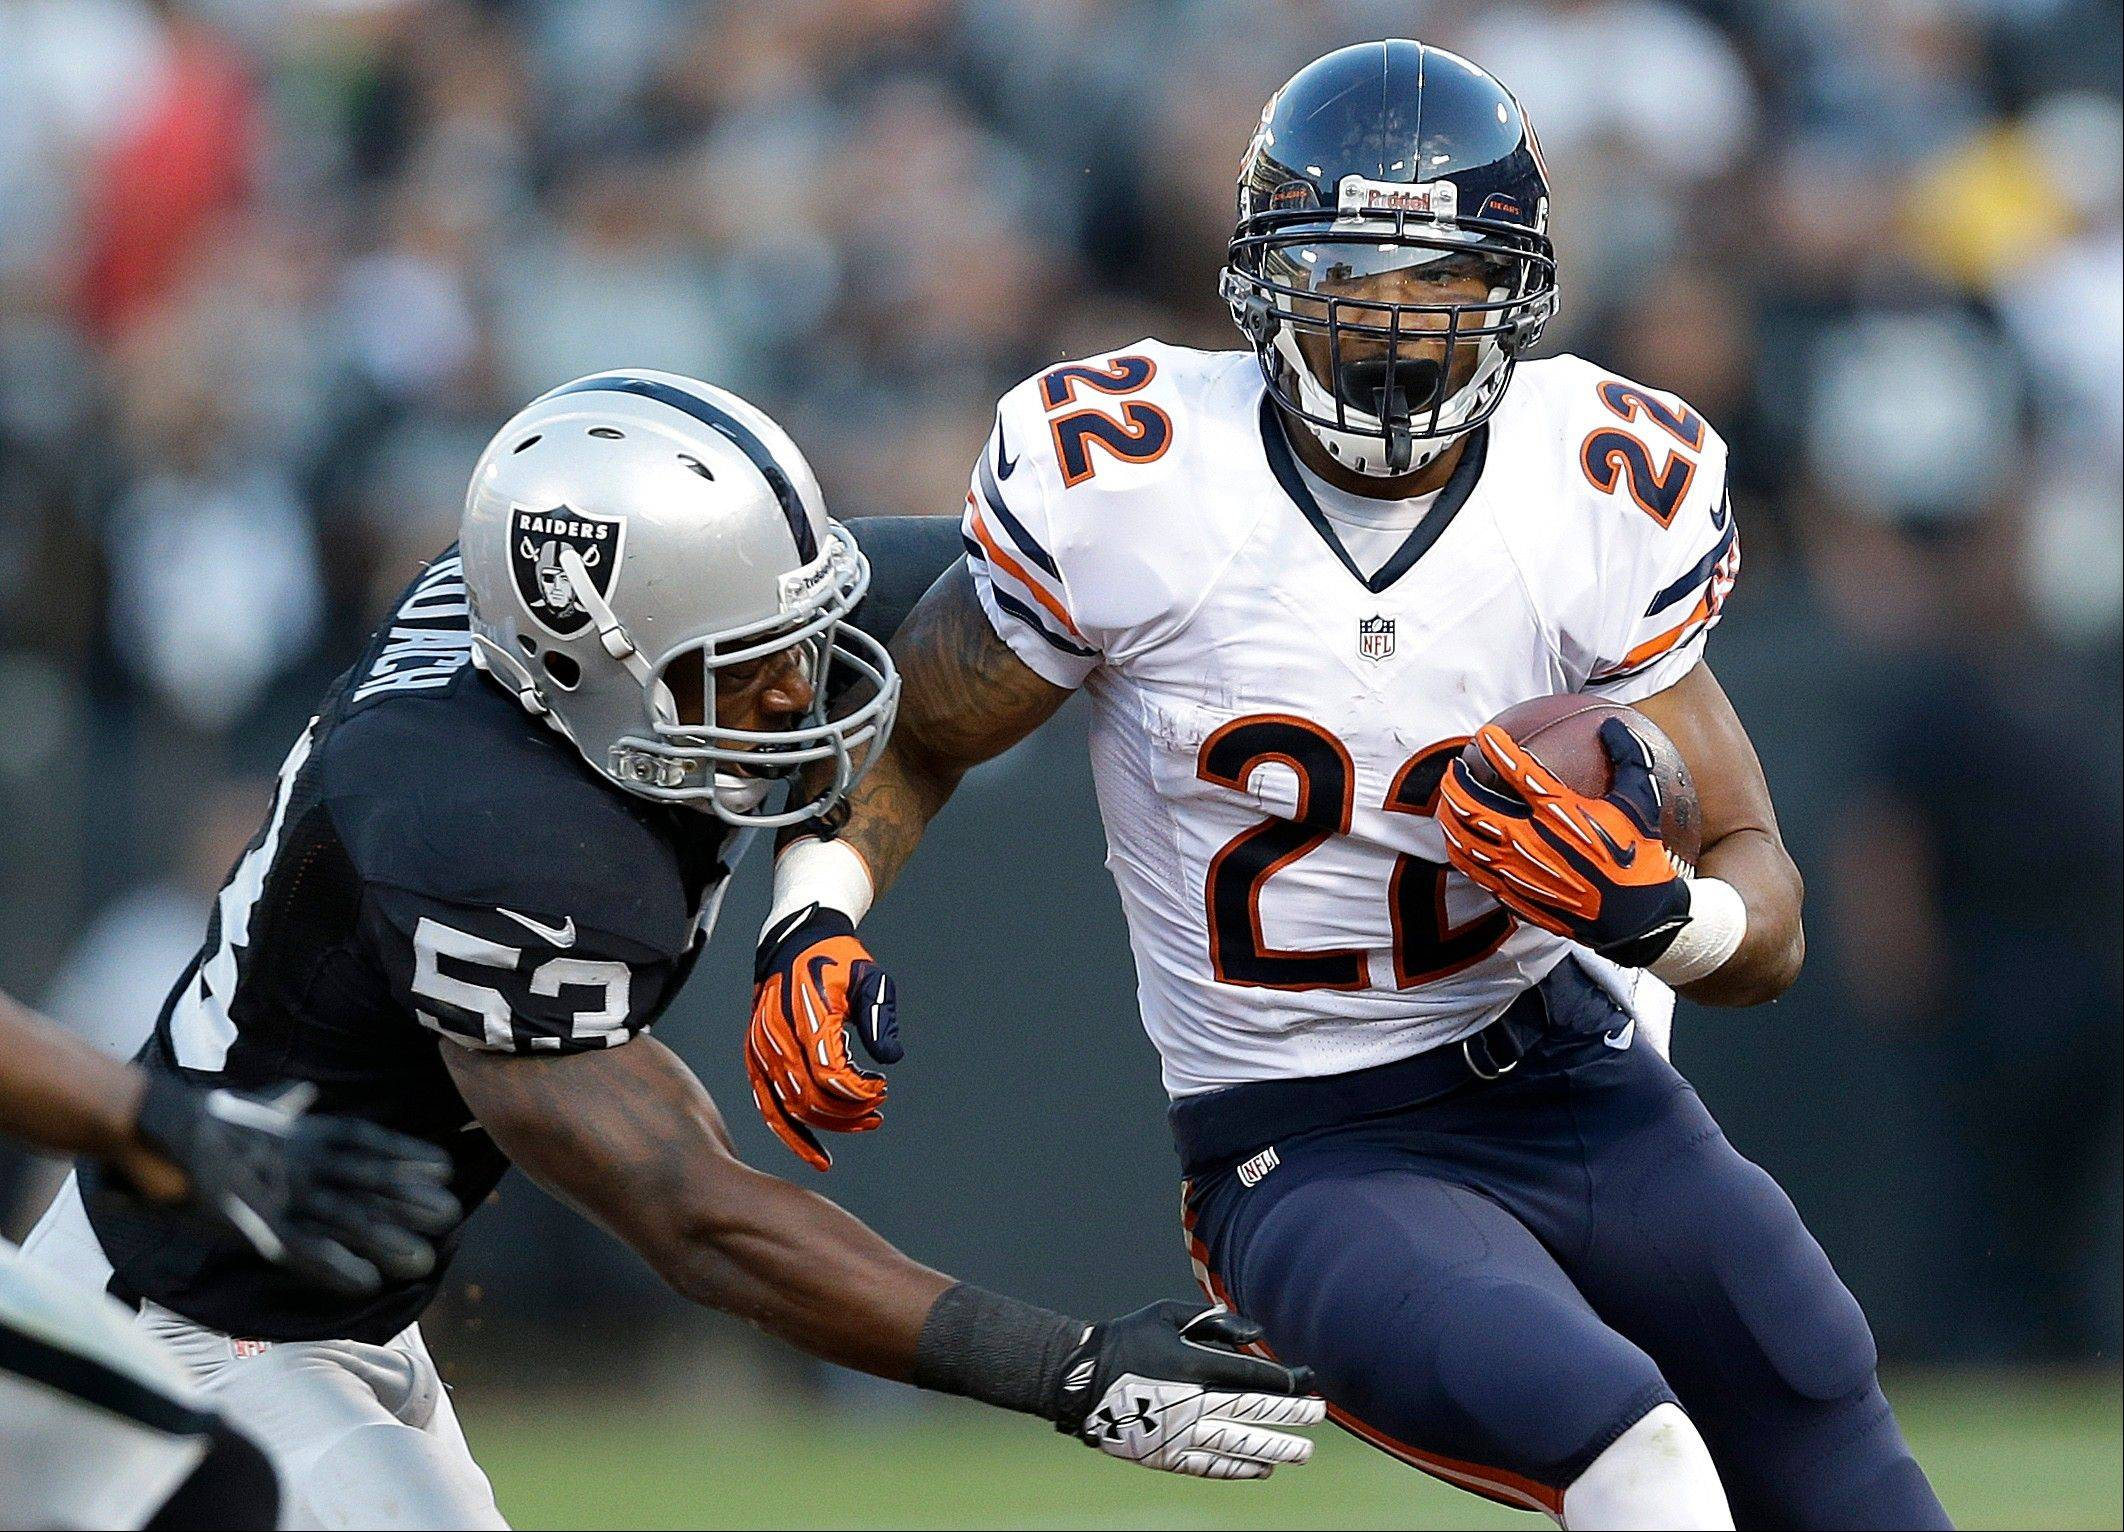 back Matt Forte carries against Oakland linebacker Nick Roach during a preseason game. Roach is having a solid season as the Raiders� middle linebacker.